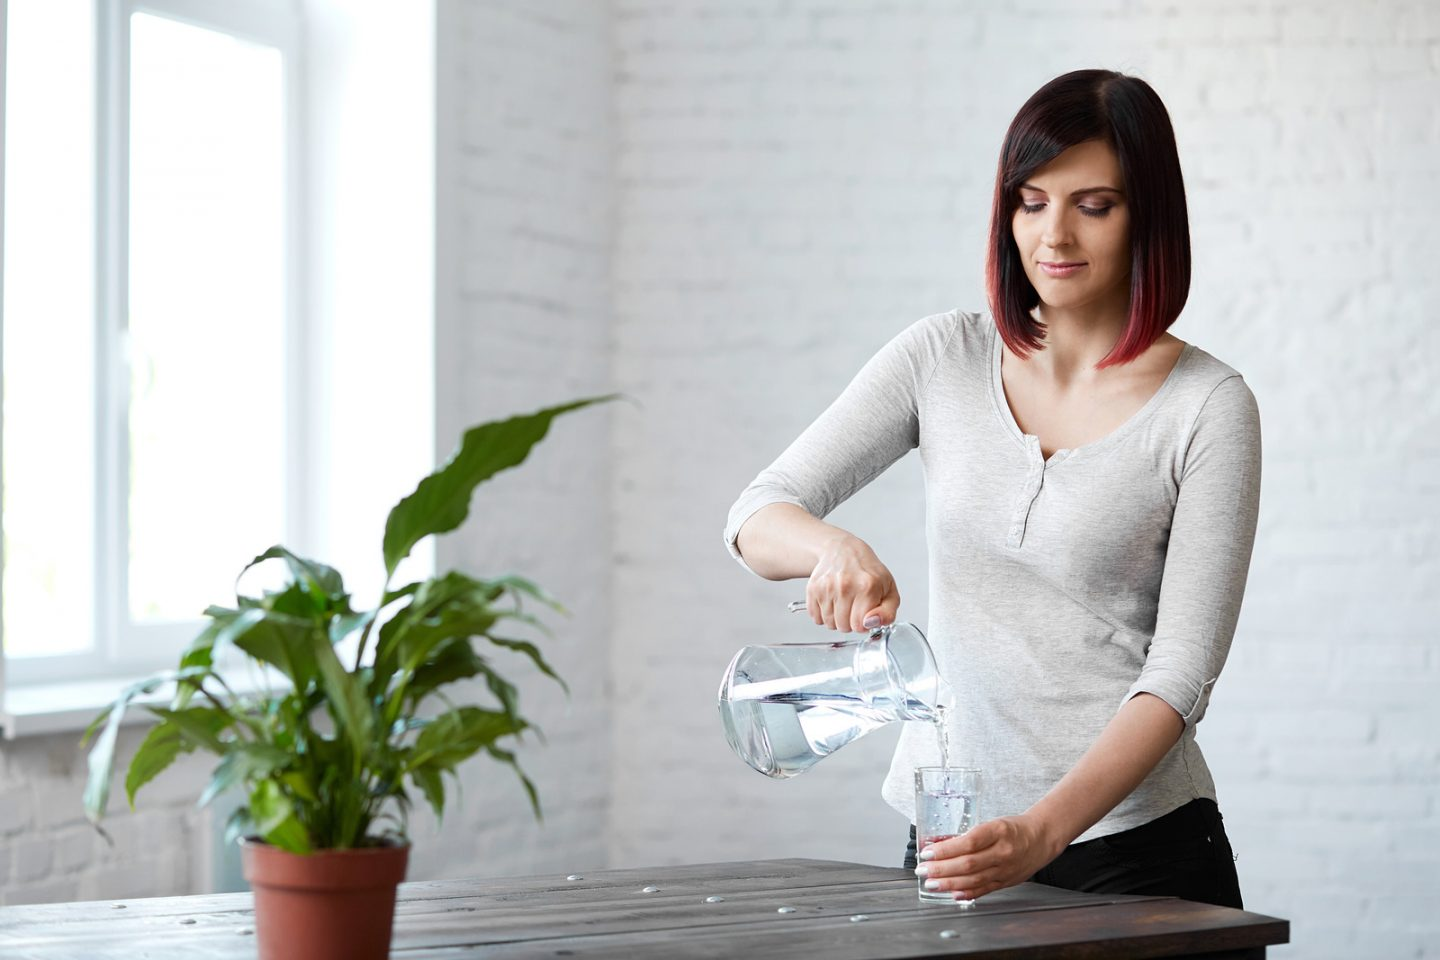 Drinking Water. Healthy Lifestyle. Diet concept. Healthy Eating. Beautiful young woman drinking water.